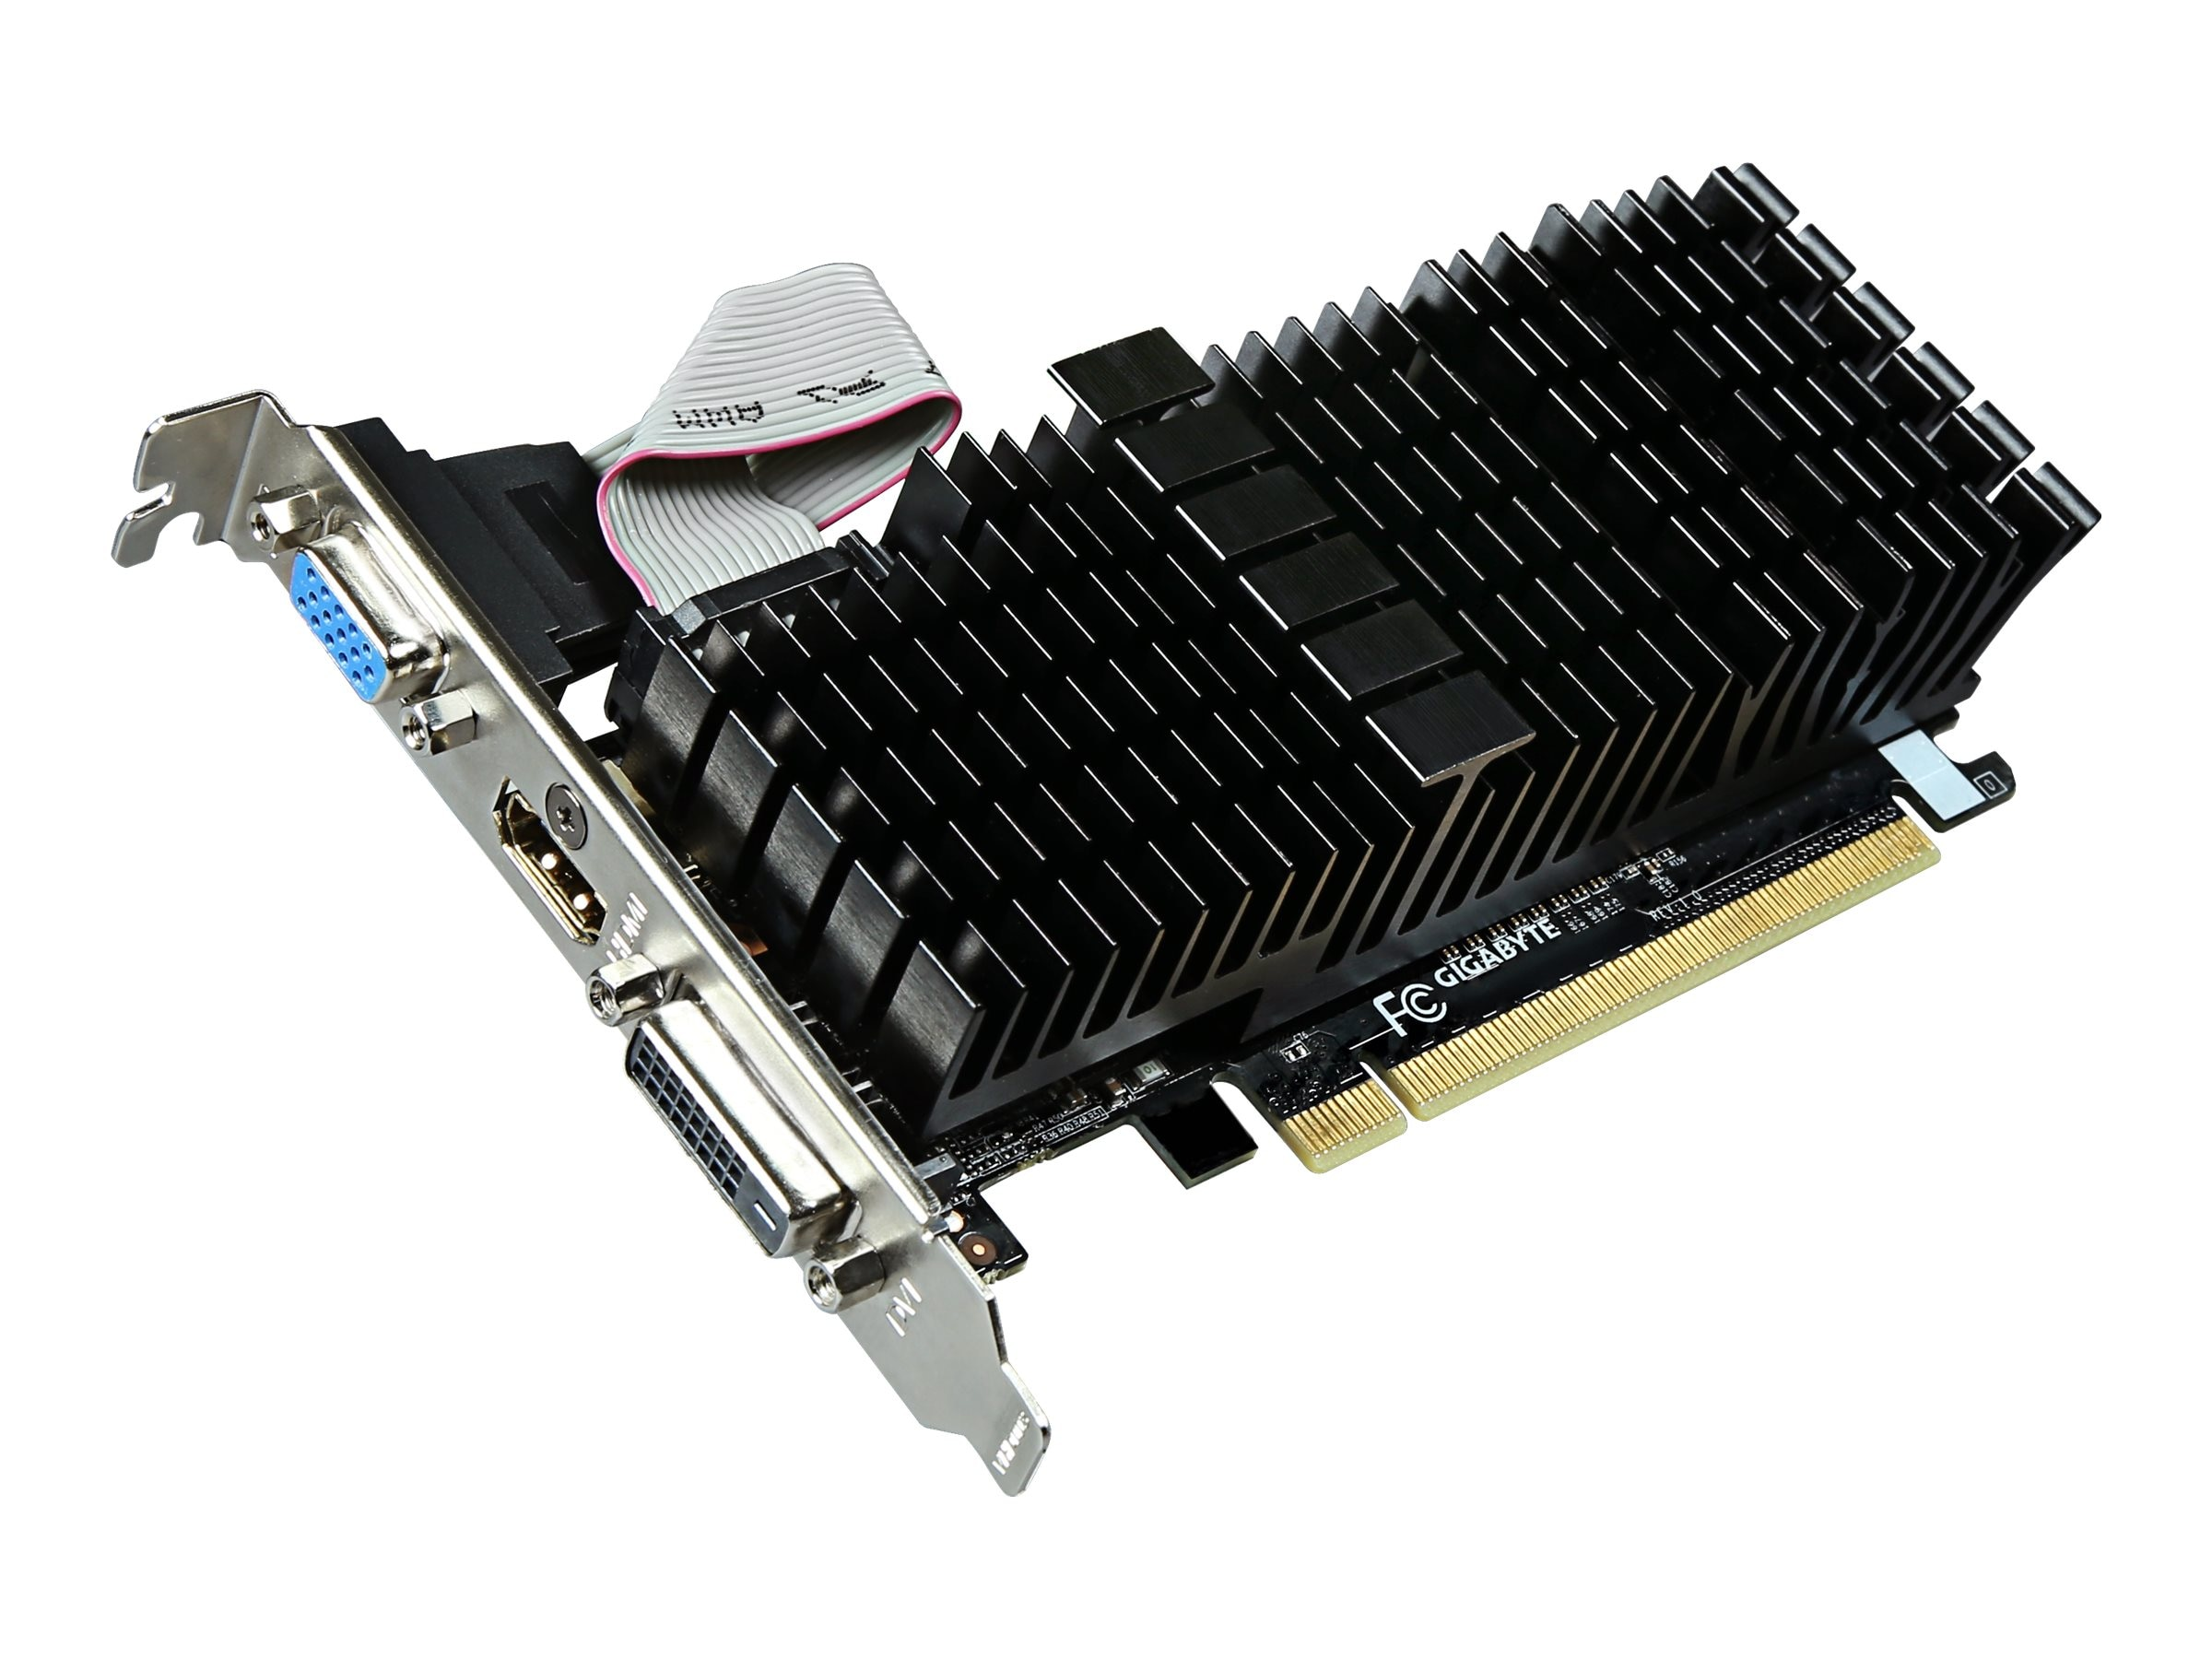 Gigabyte Tech GeForce GT 710 PCIe 2.0 Graphics Card, 1GB GDDR3, GV-N710SL-1GL REV2.0